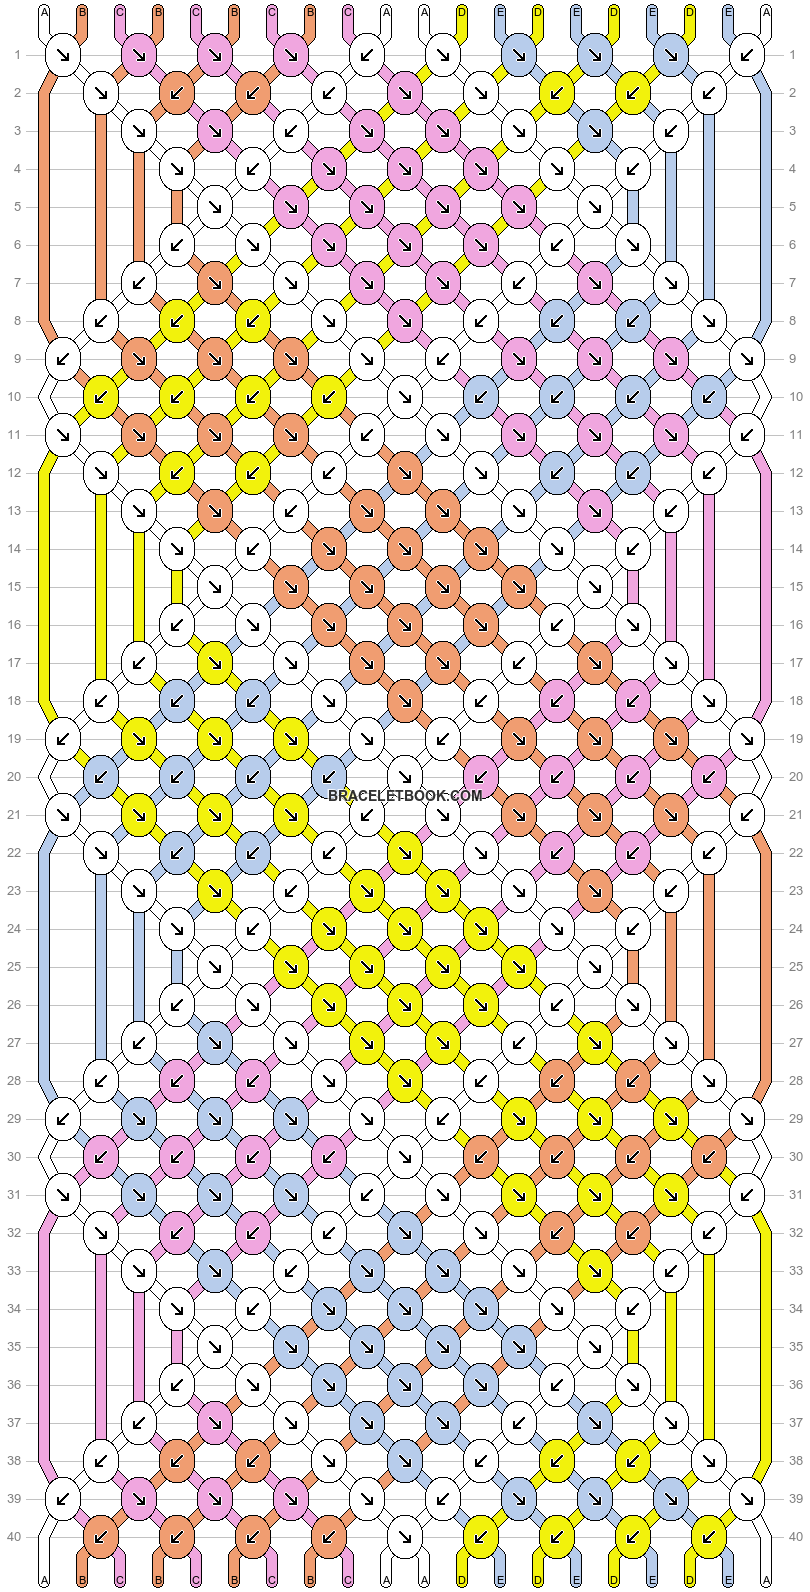 Normal Pattern #21711 added by mzsoca